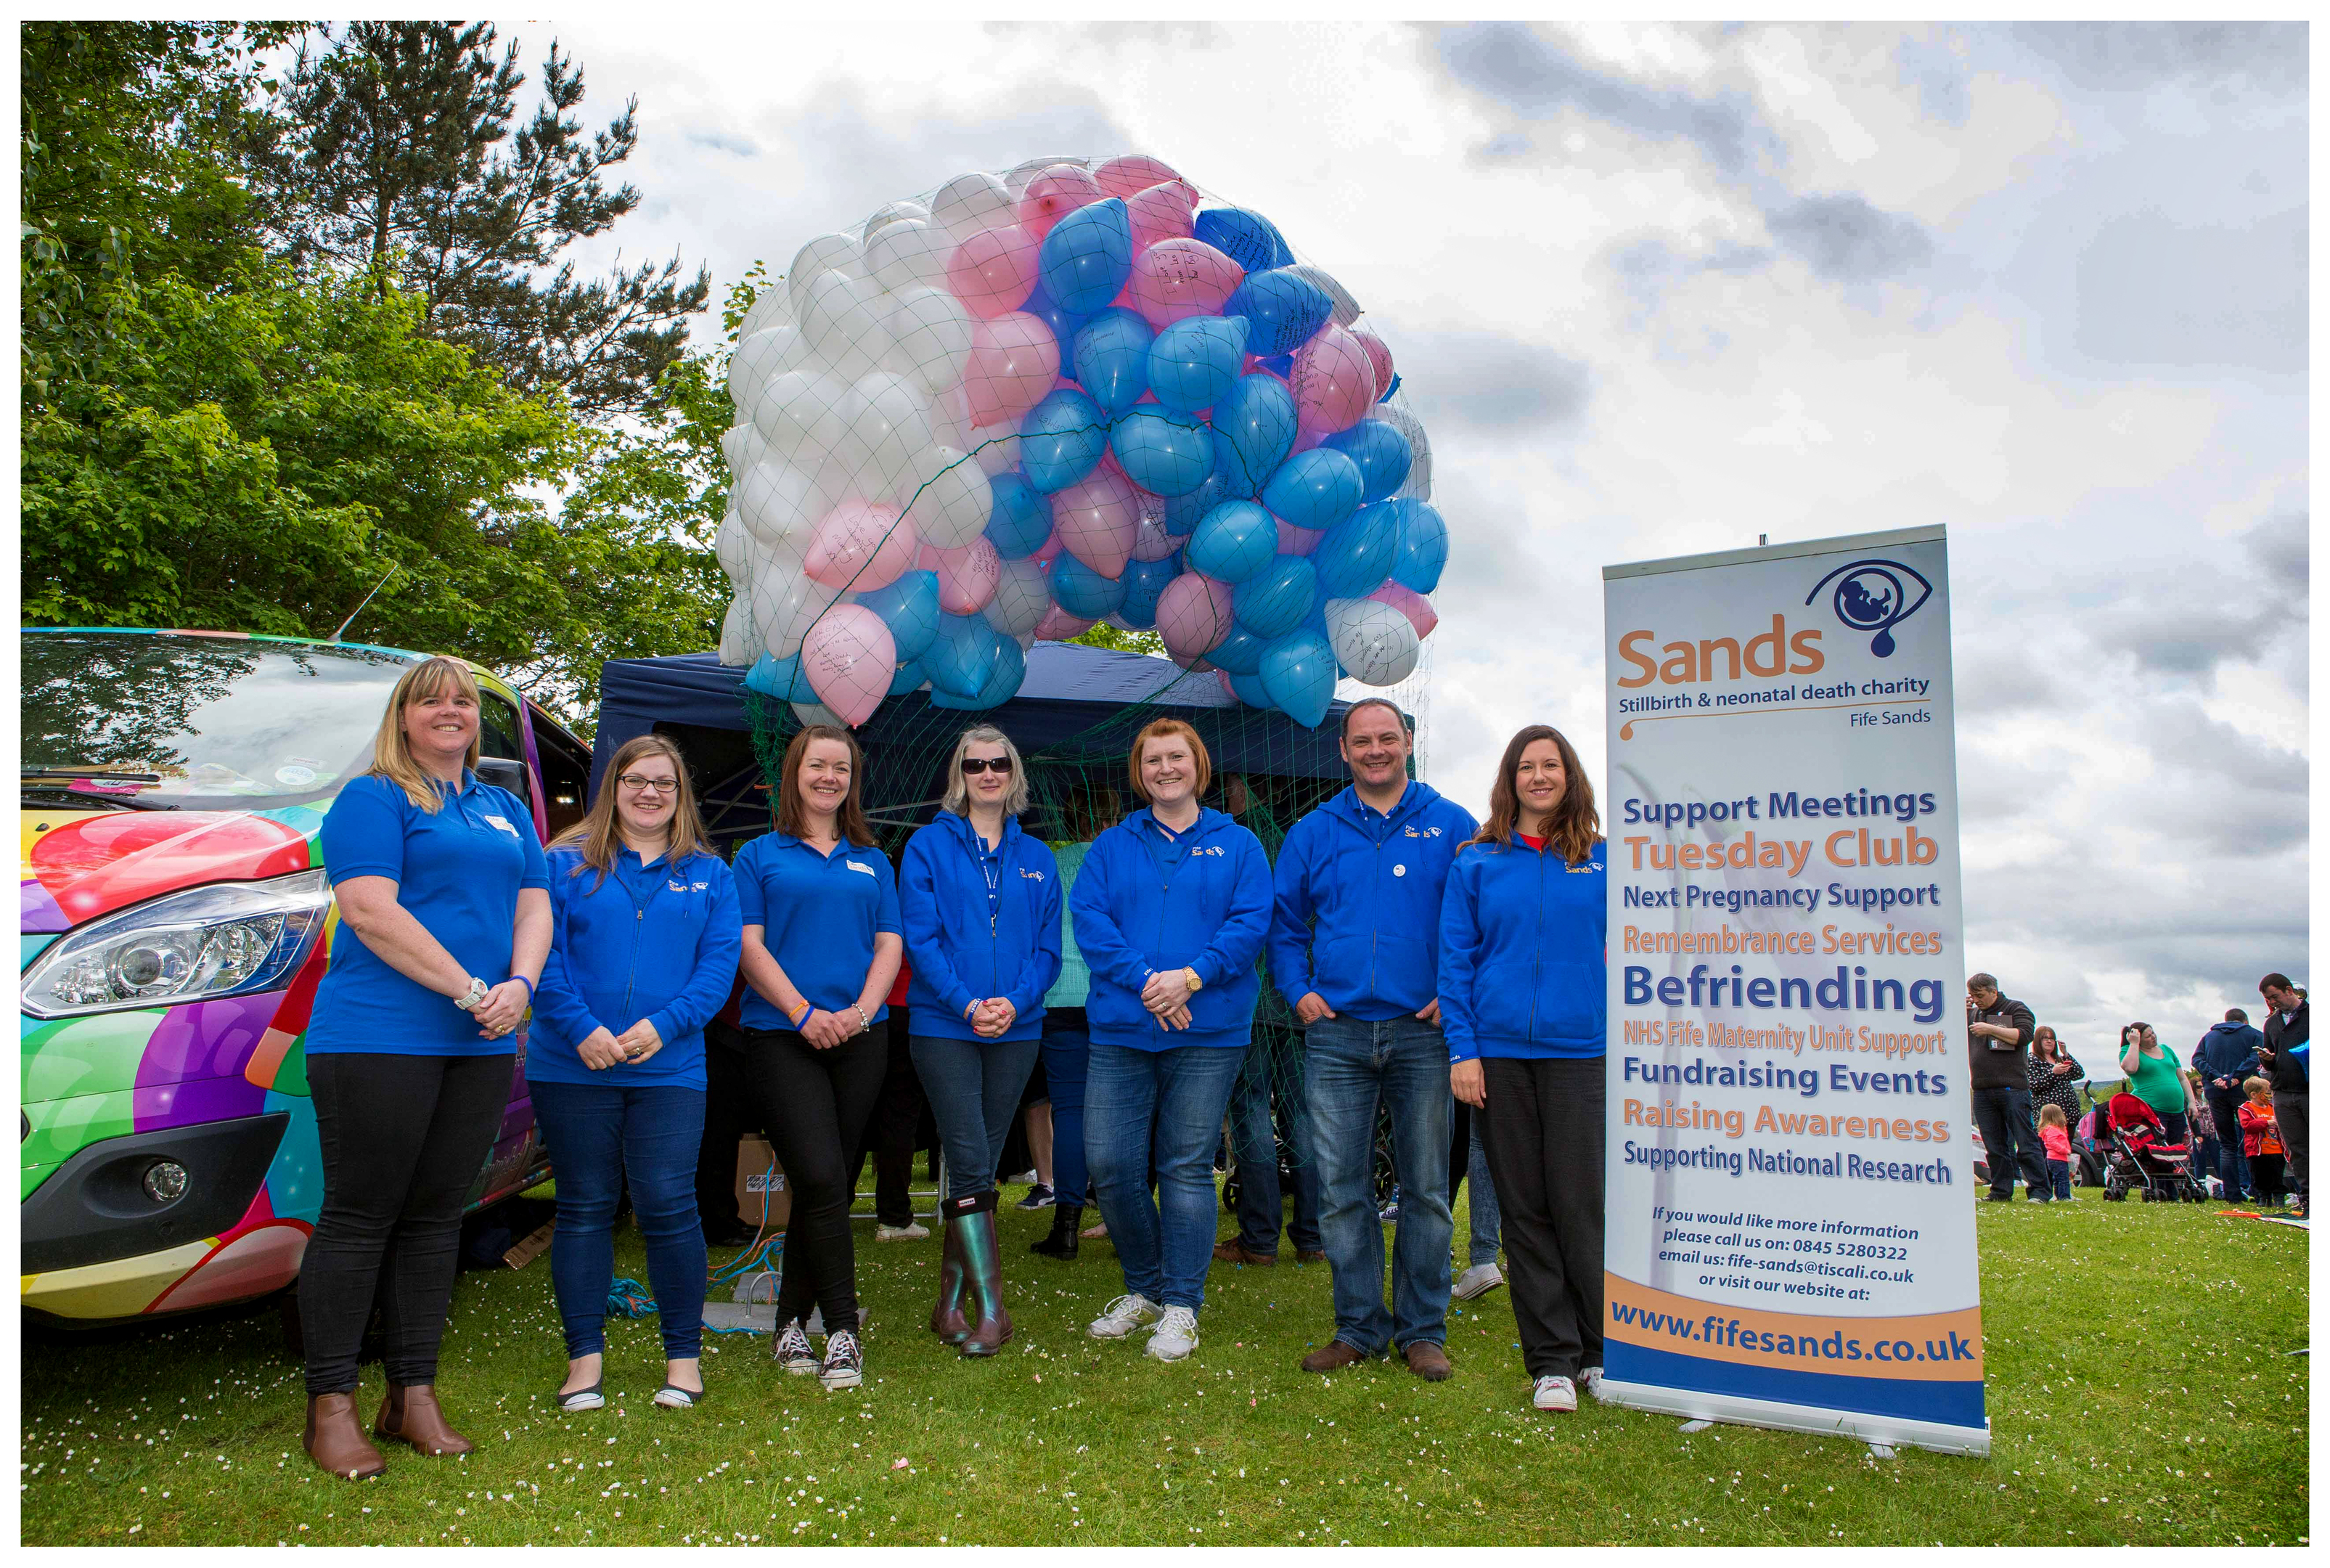 Fife Sands organise a balloon release every year.